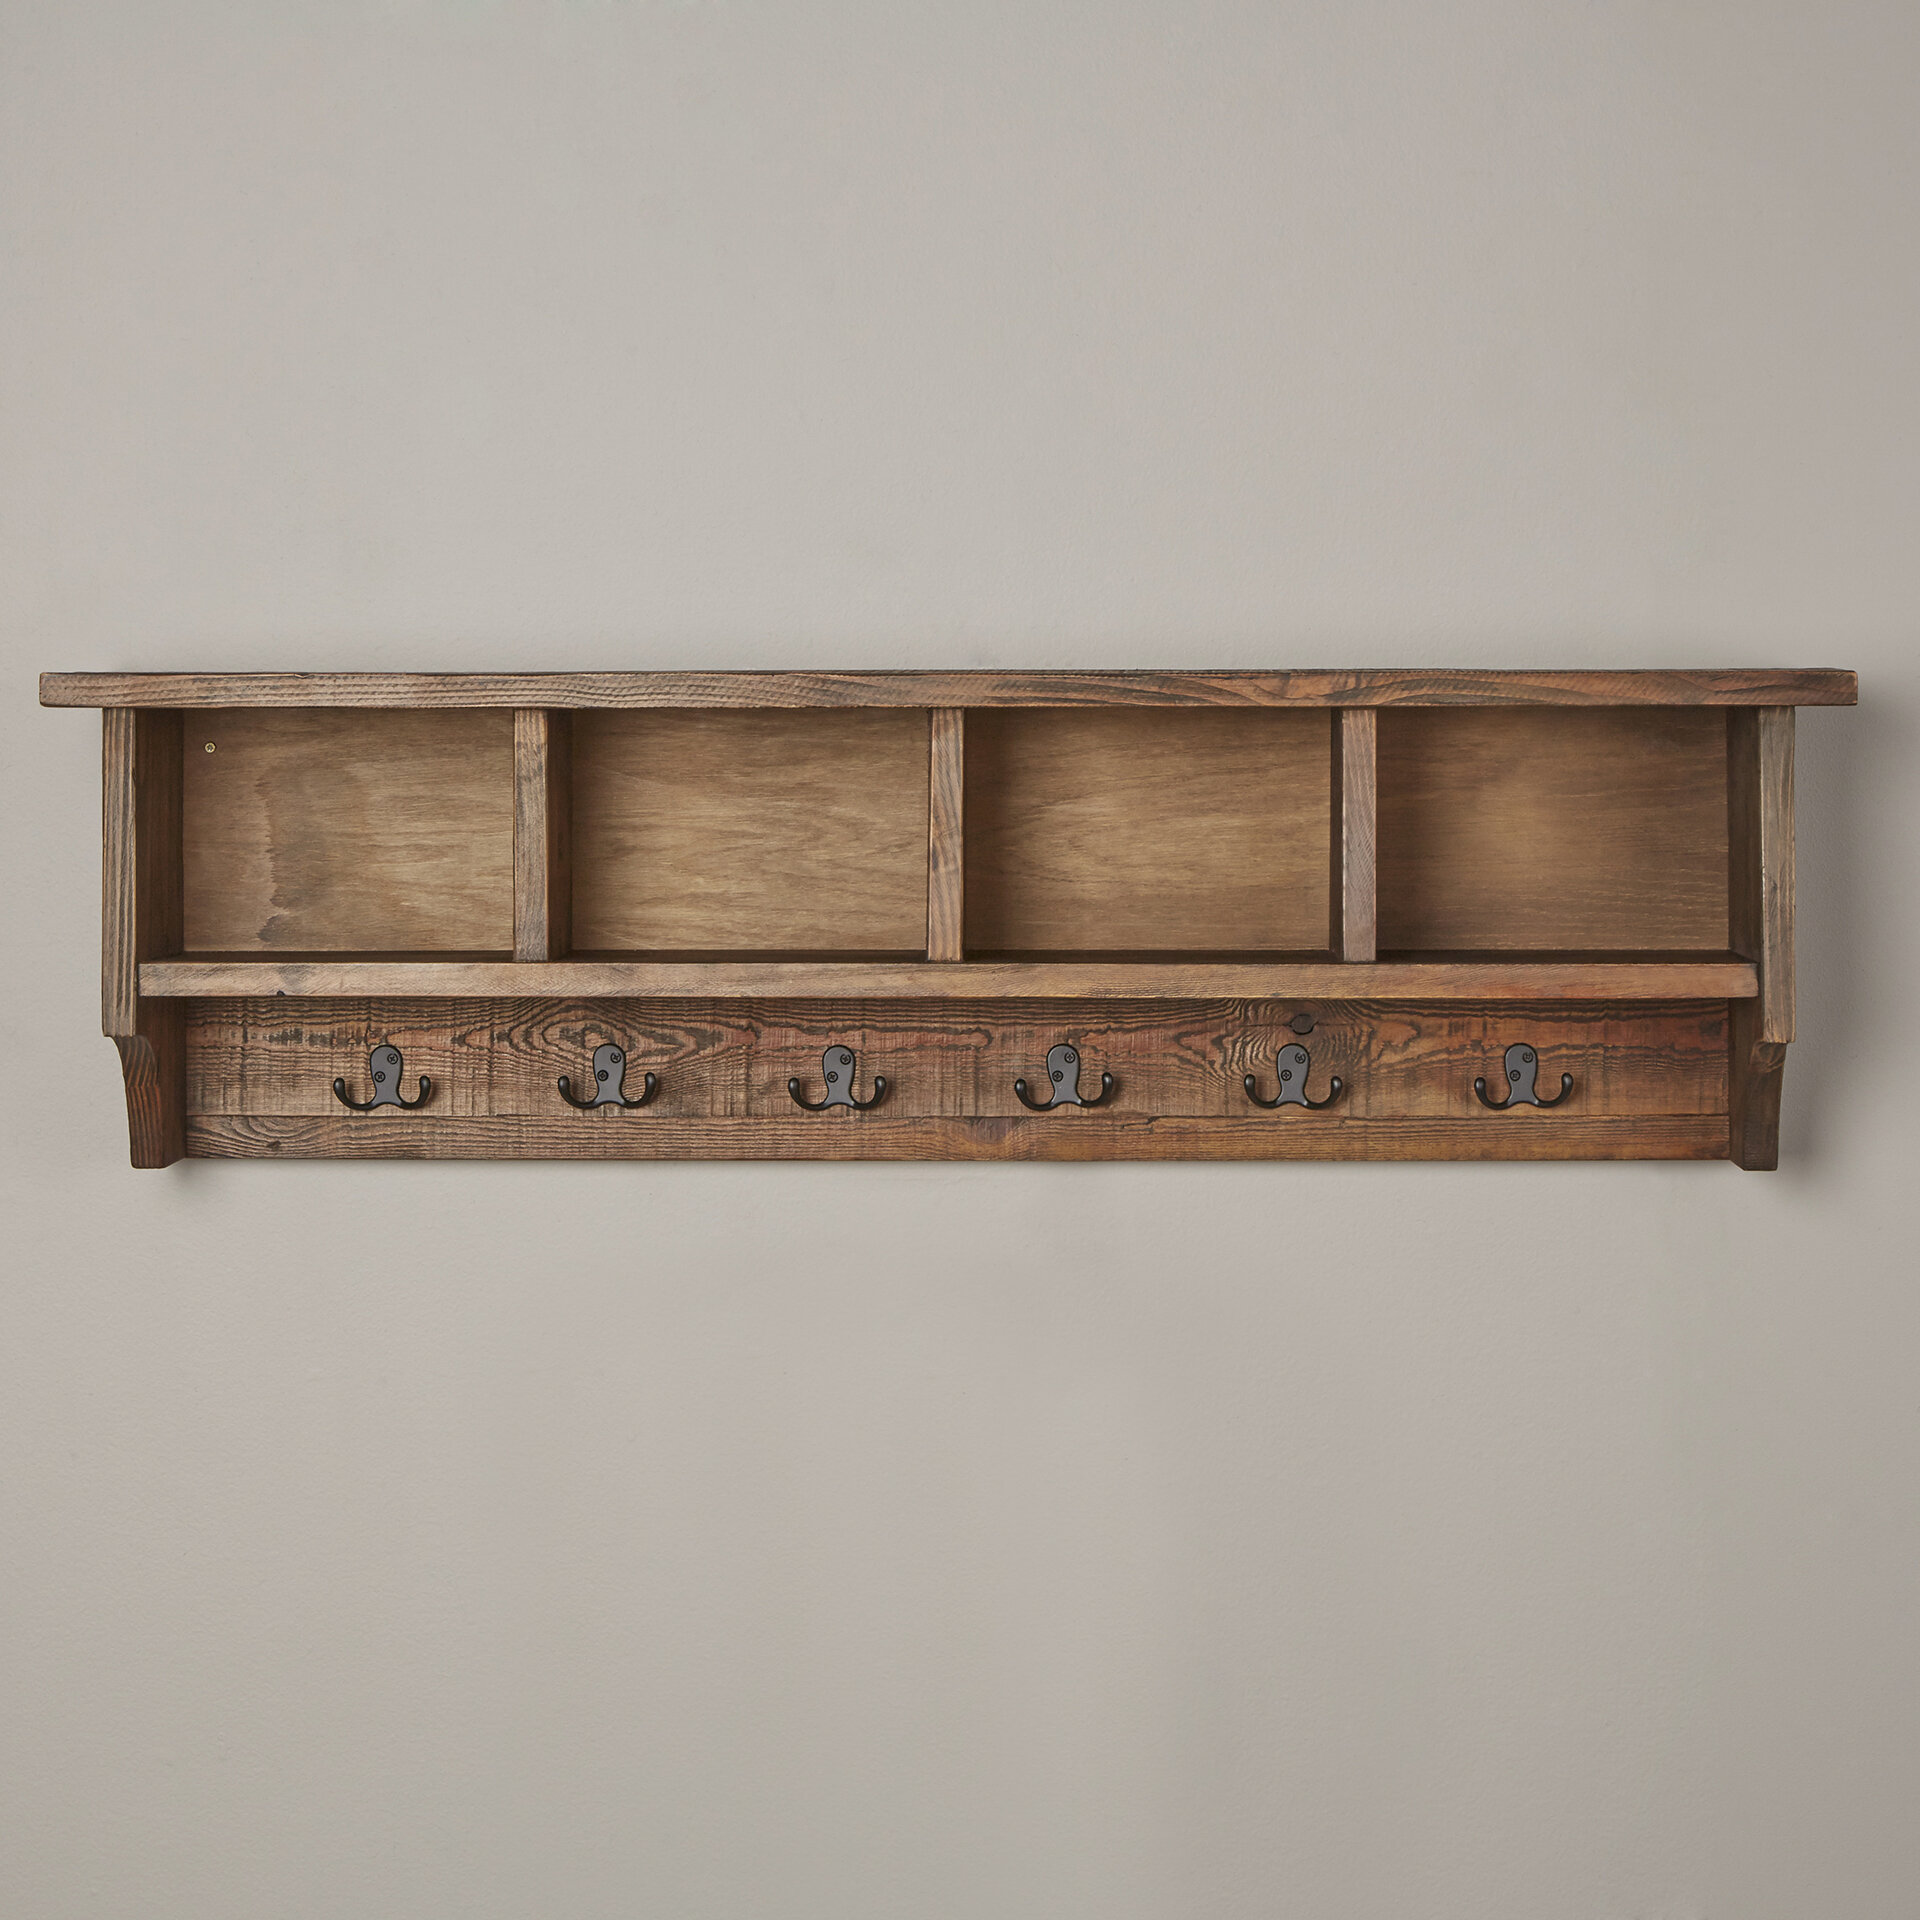 veropeso wall mounted coat rack with storage cubbies reviews rh birchlane com  wall-mounted cubby storage shelf coat rack